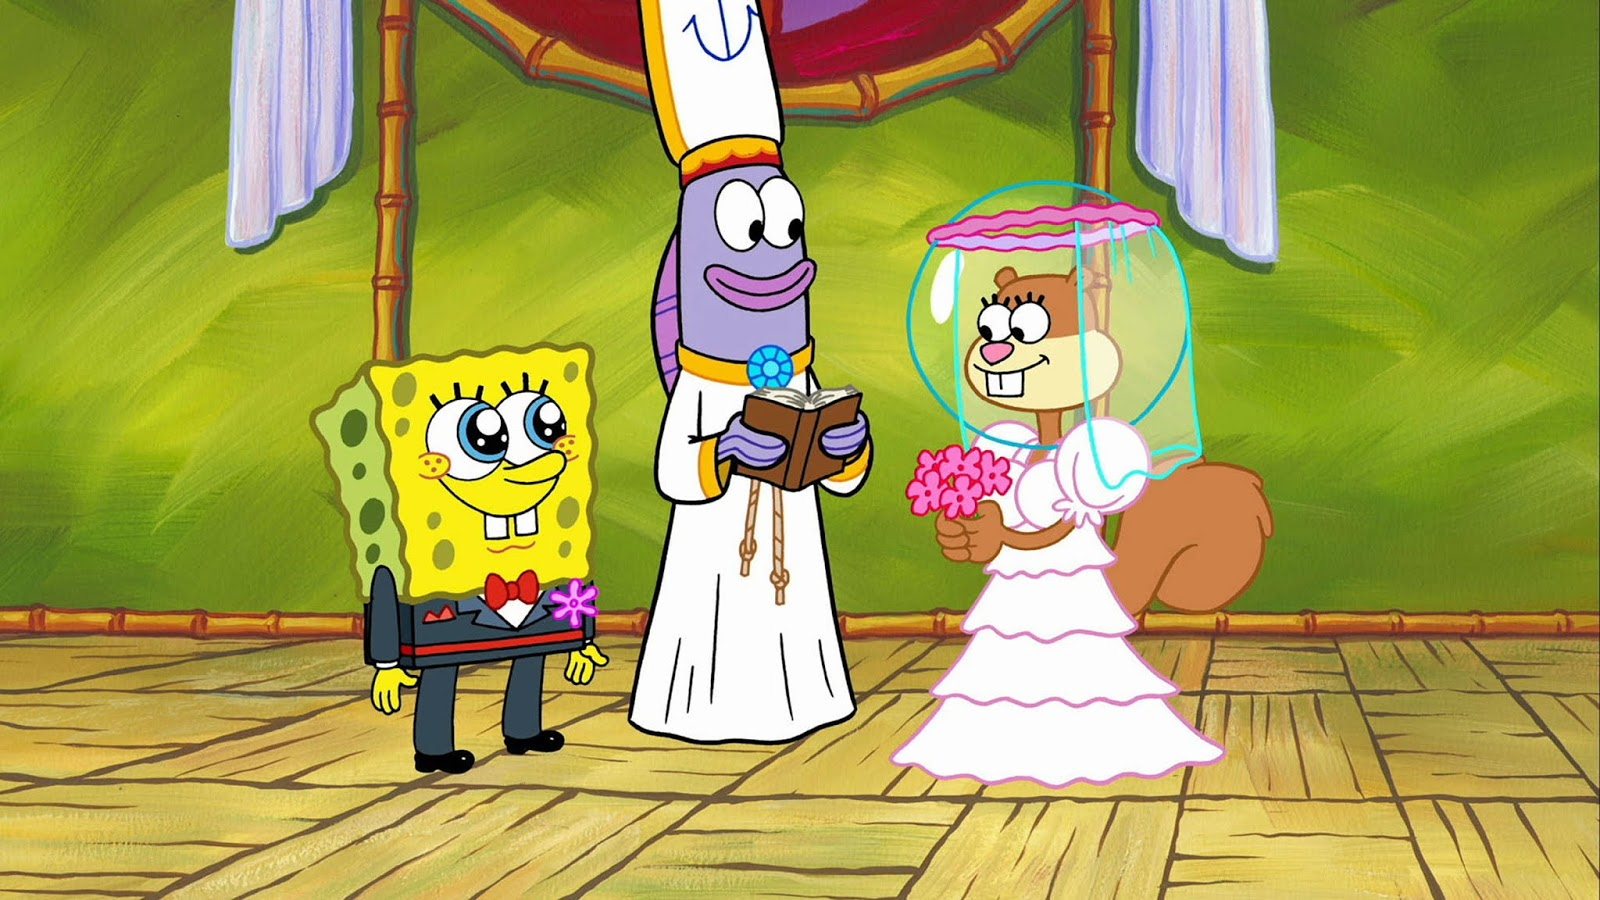 File:Spongebob maried.jpg